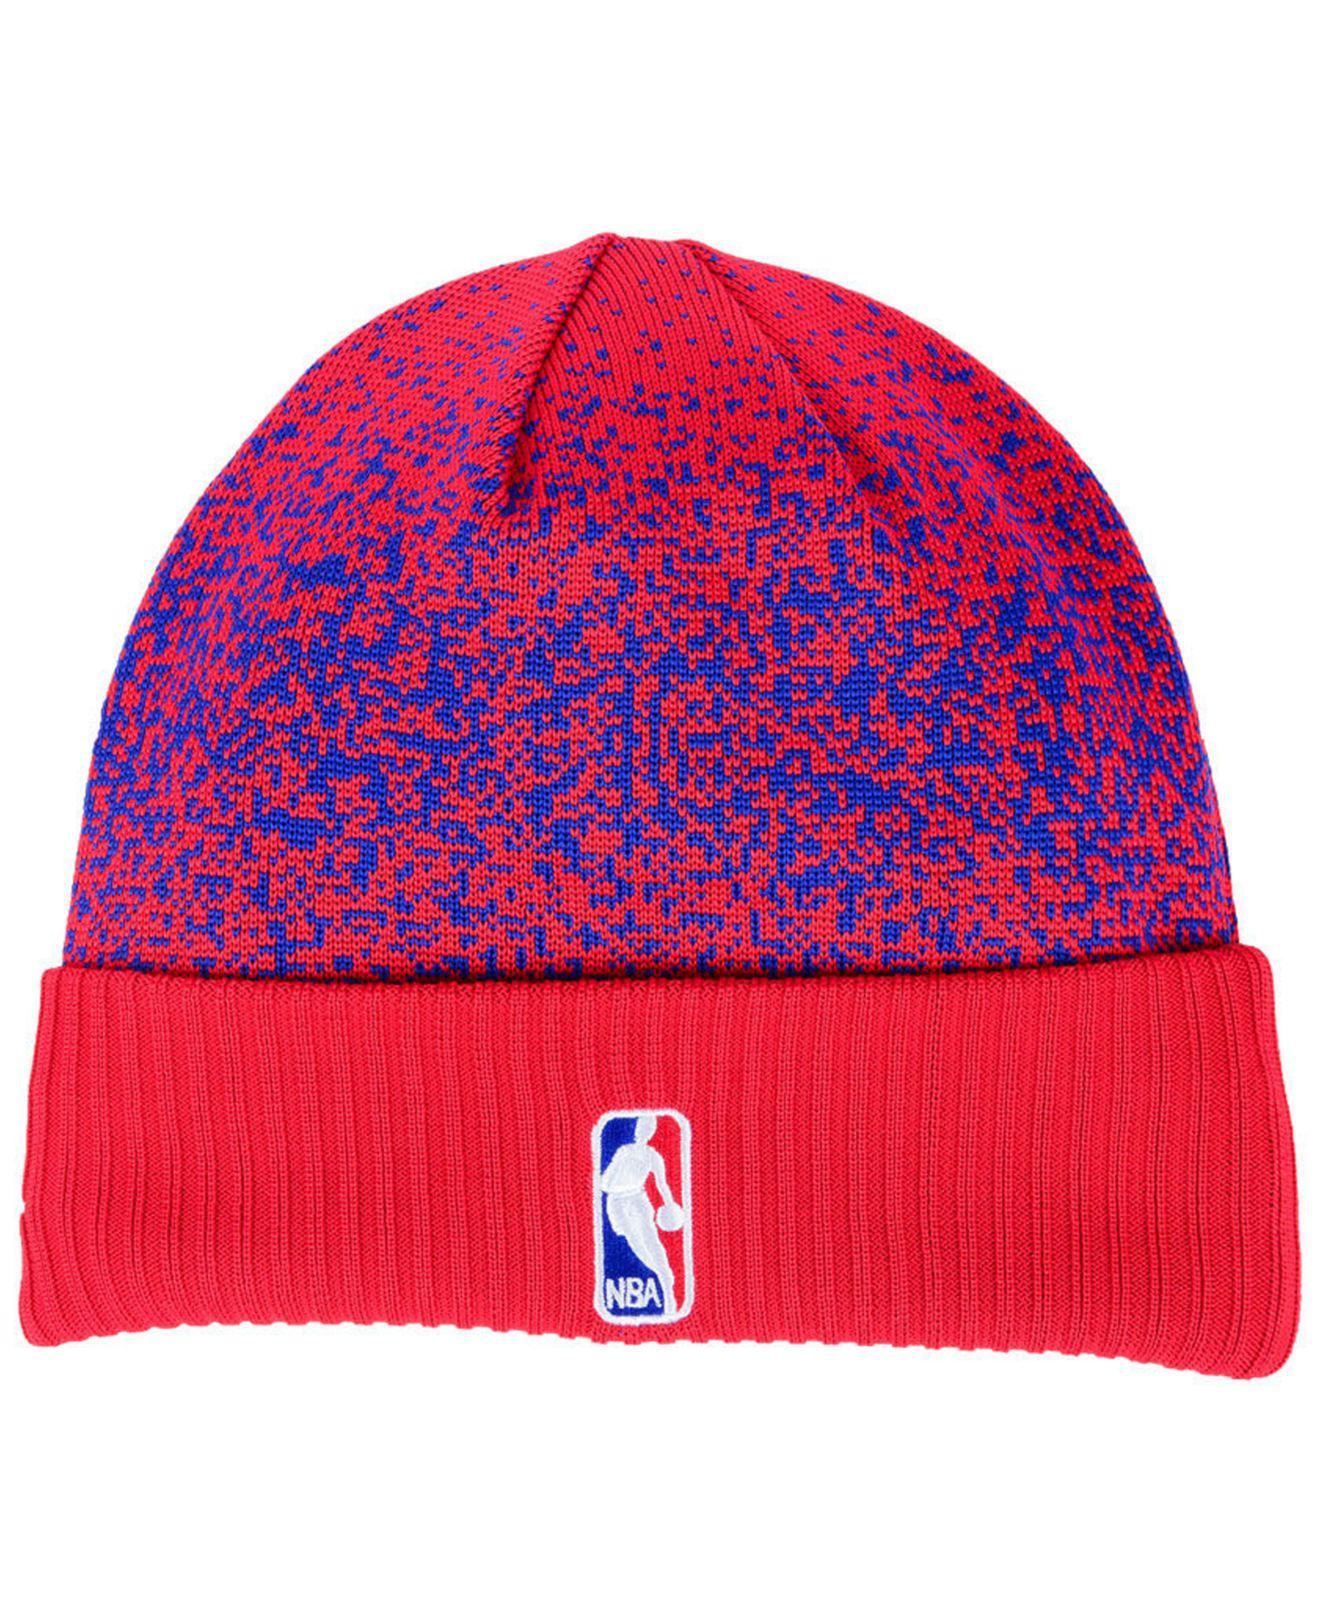 6696c2392f8264 Lyst - KTZ On Court Collection Cuff Knit Hat in Red for Men